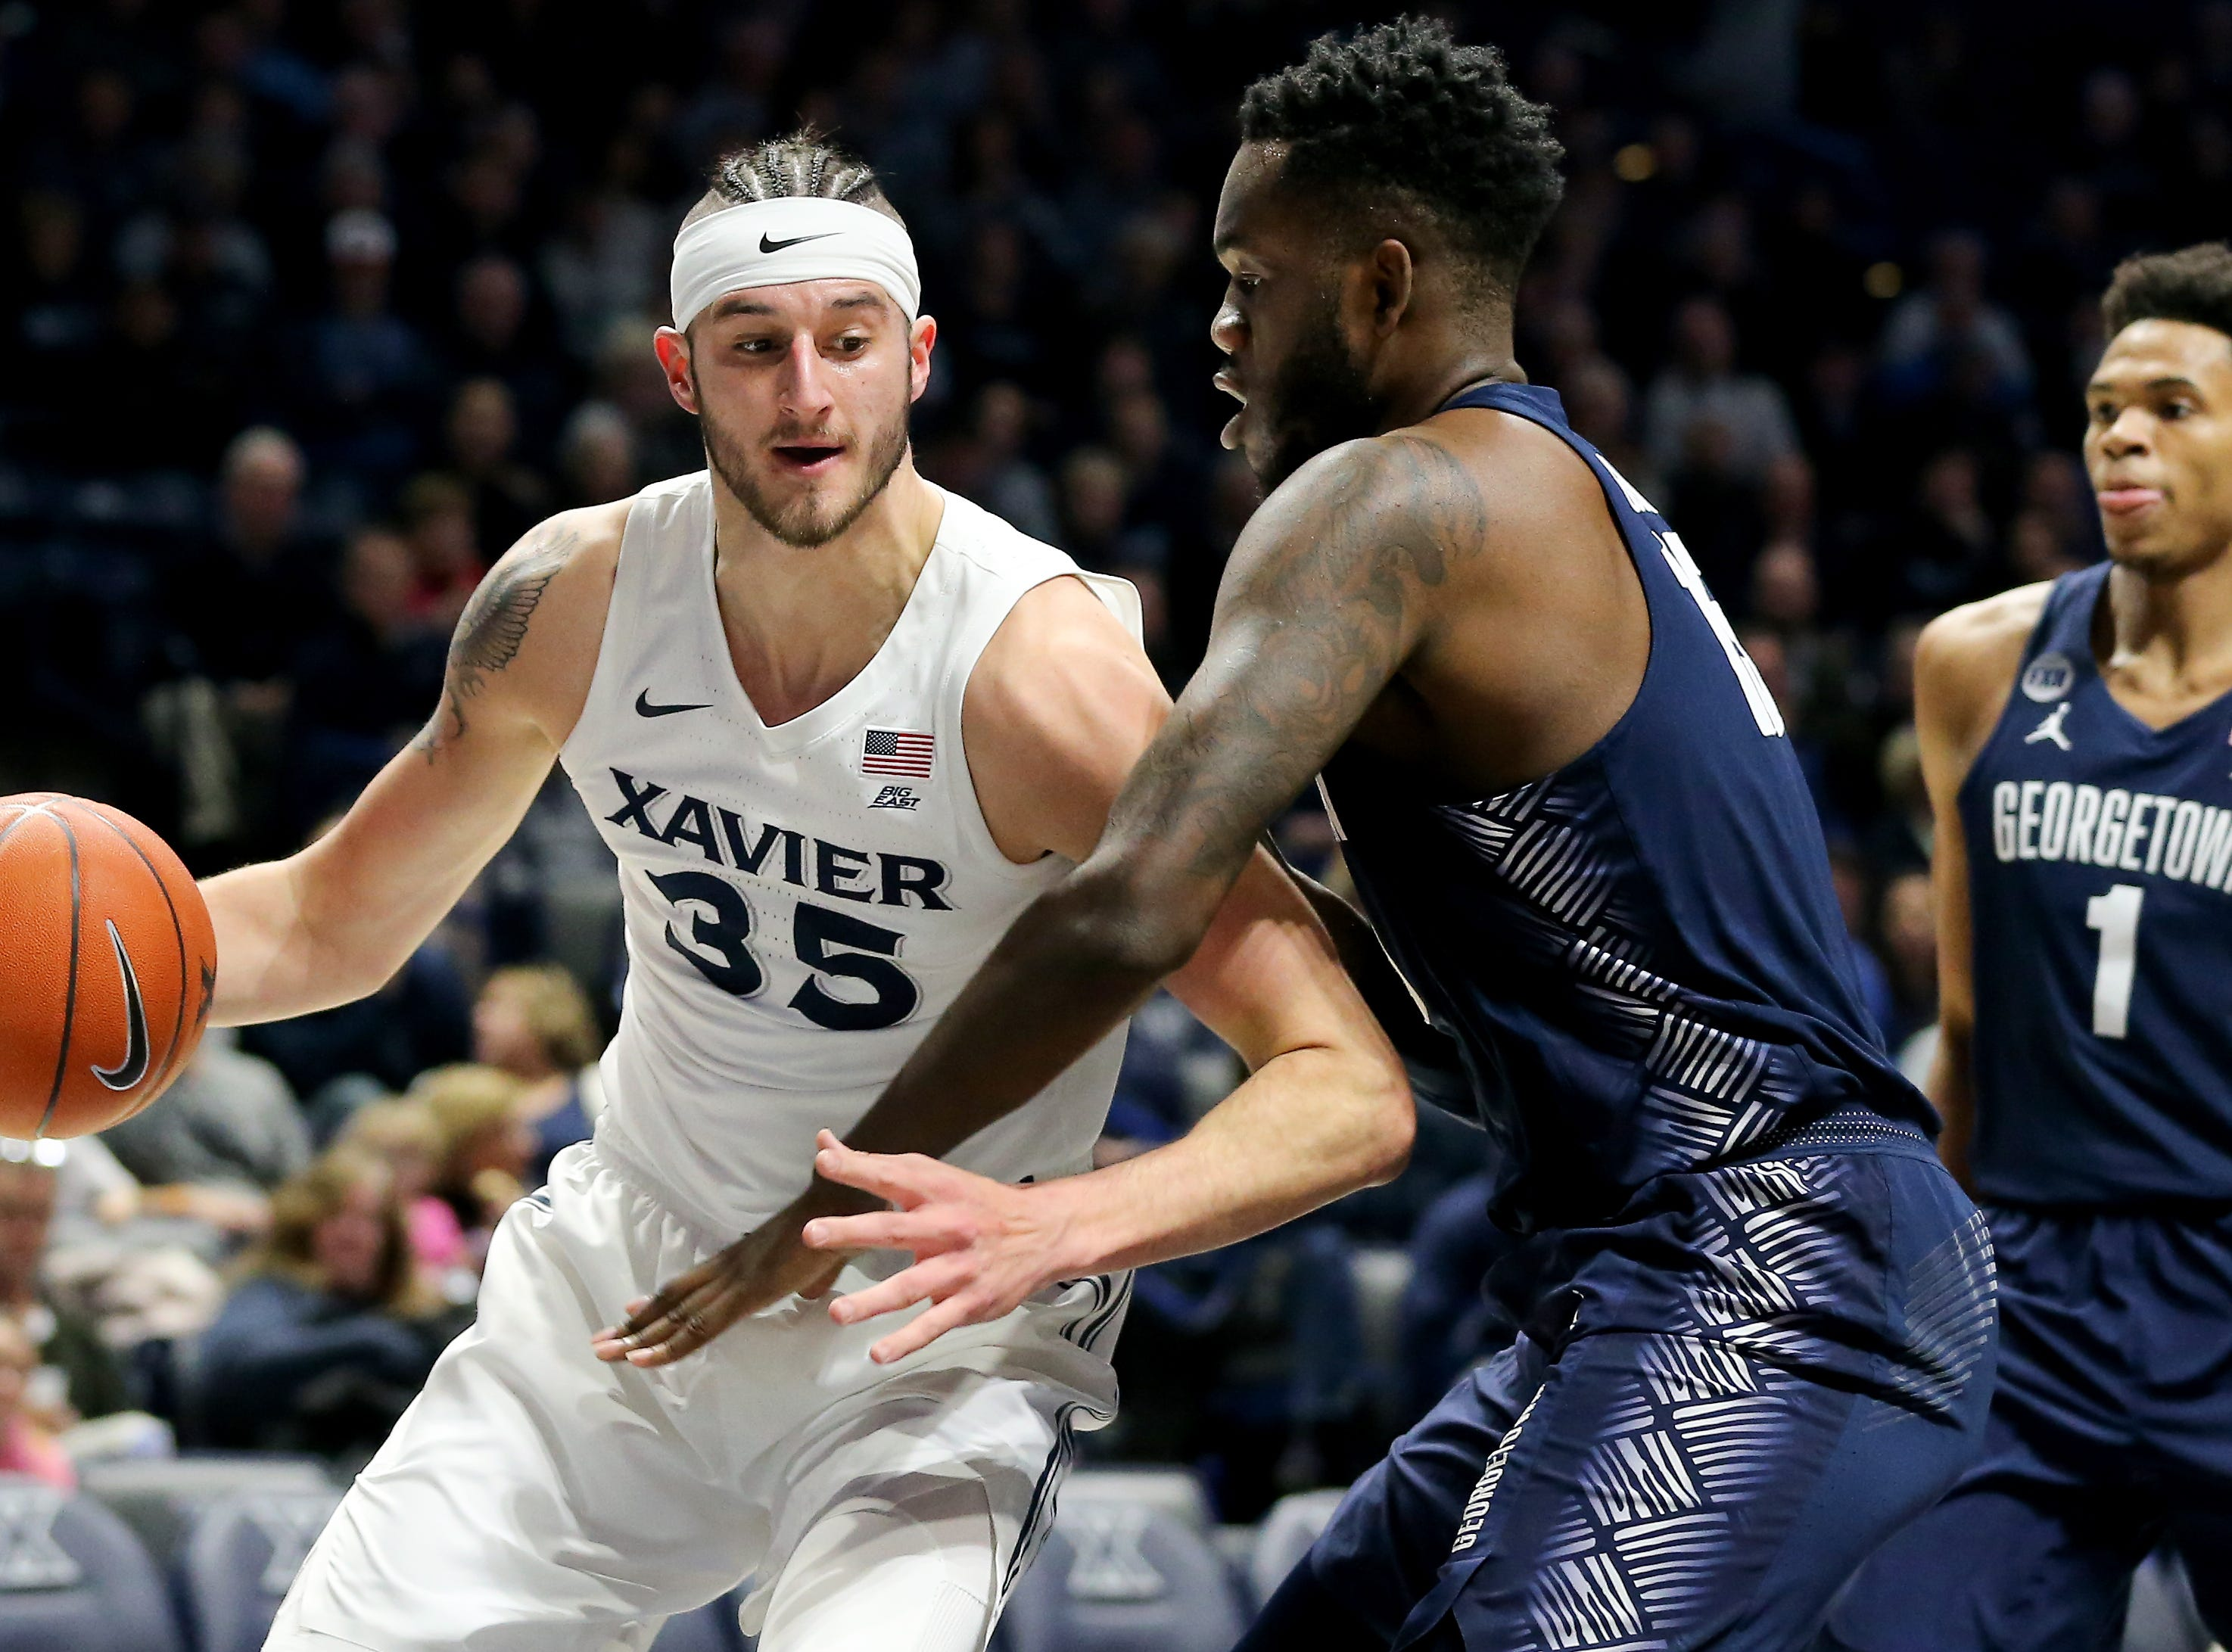 Xavier Musketeers forward Zach Hankins (35) spins toward the basket as Georgetown Hoyas center Jessie Govan (15) defends in the first half of an NCAA basketball game, Wednesday, Jan. 9, 2019, at the Cintas Center in Cincinnati.